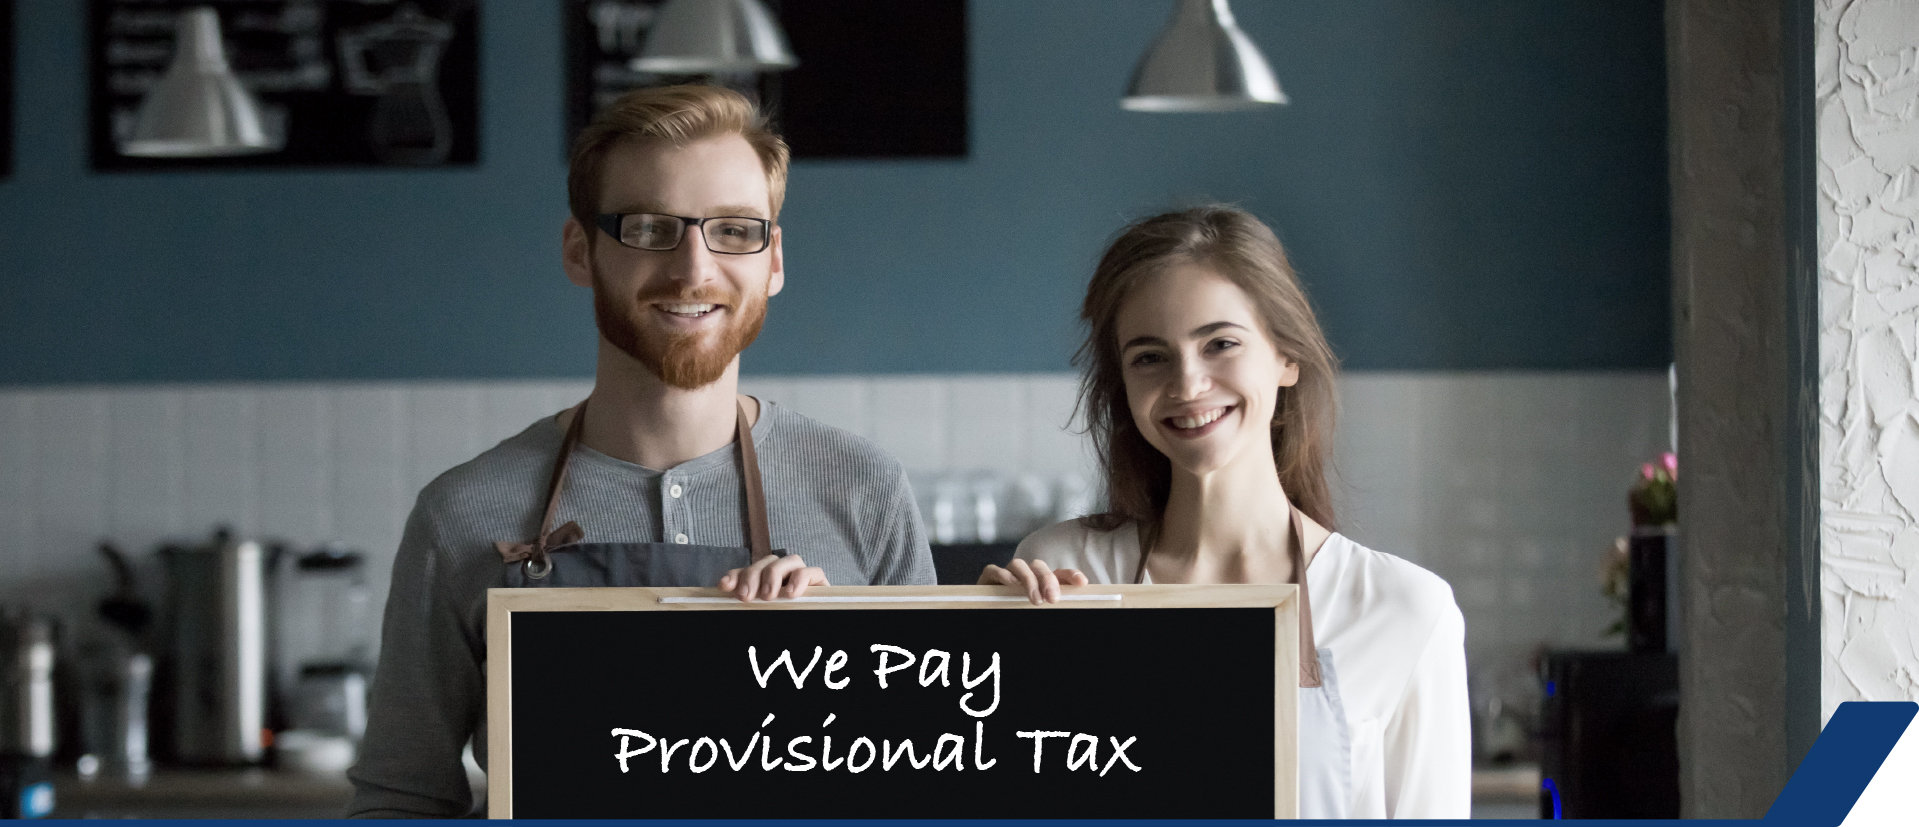 PROVISIONAL TAX IS NOT A SEPARATE TAX. WHAT DOES THIS MEAN? 2